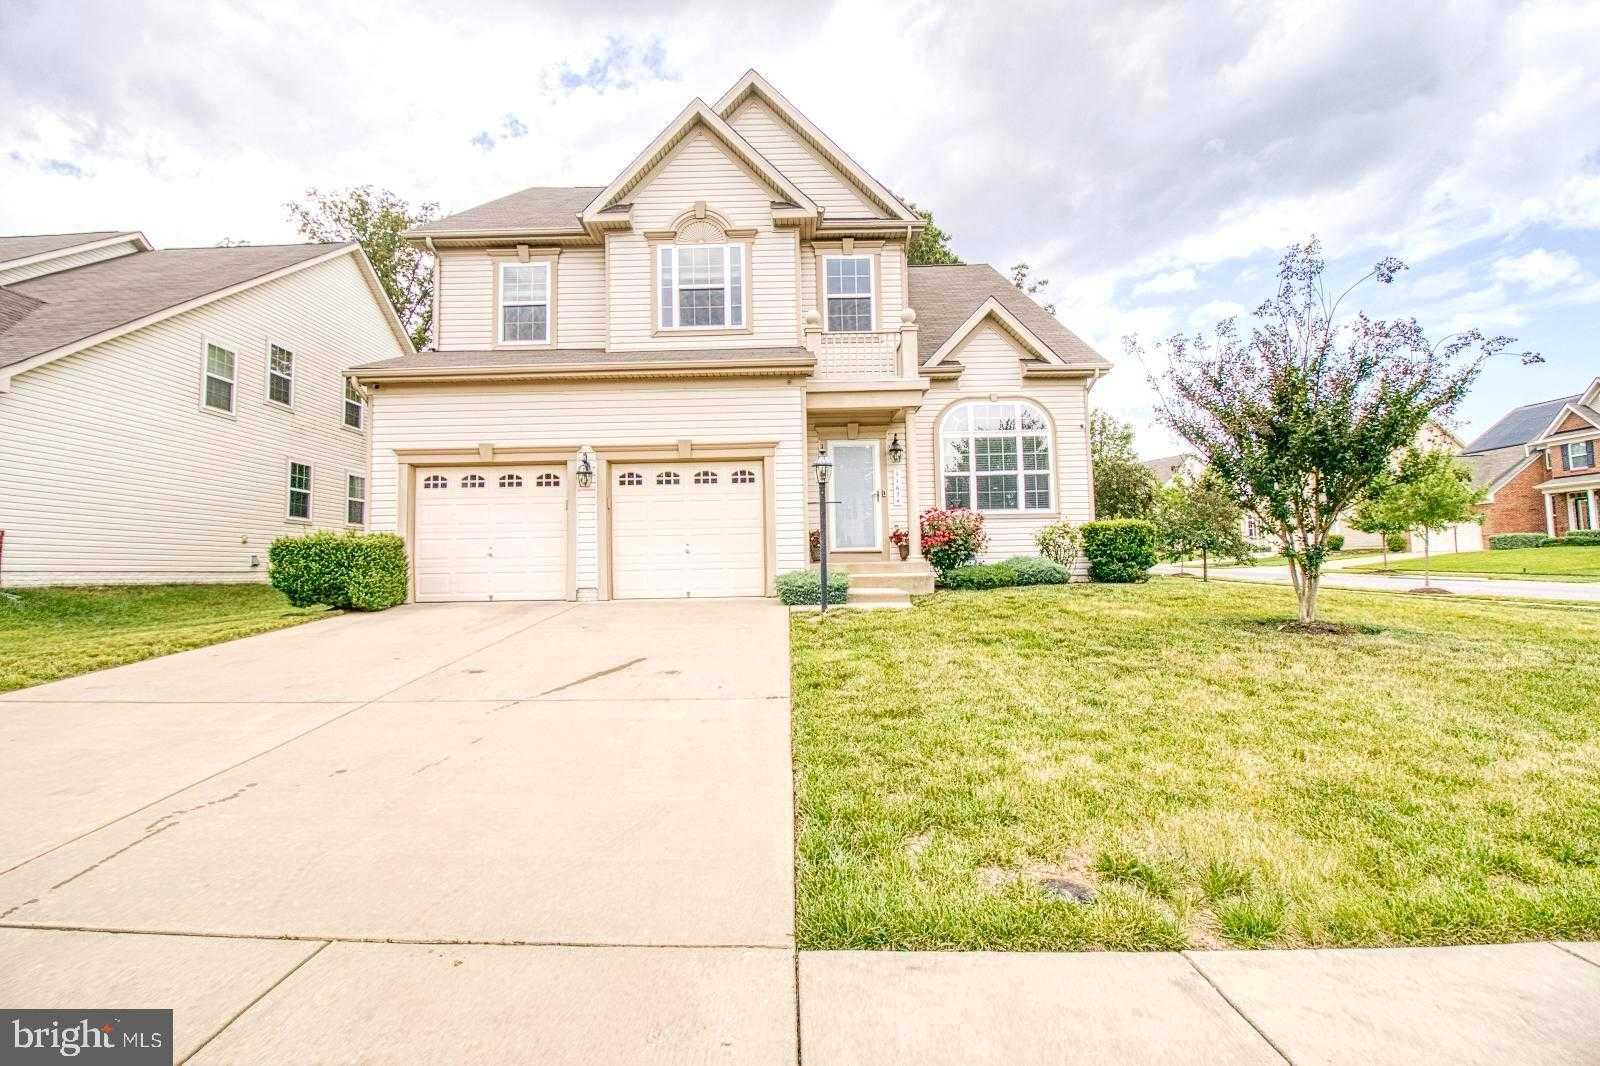 $445,500 - 4Br/4Ba -  for Sale in St Charles, Waldorf